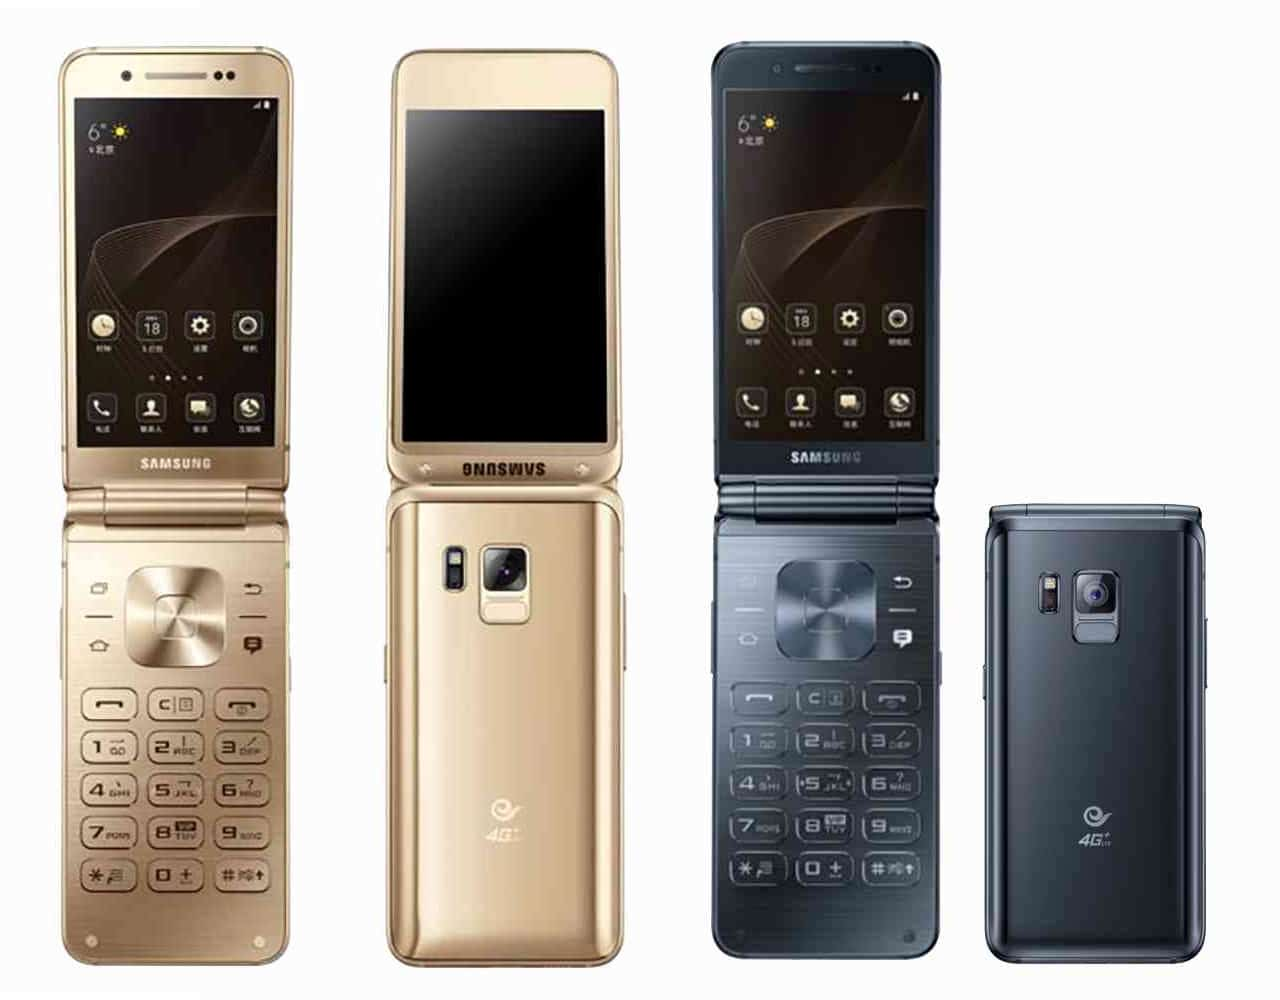 Samsung W2017 gold and black